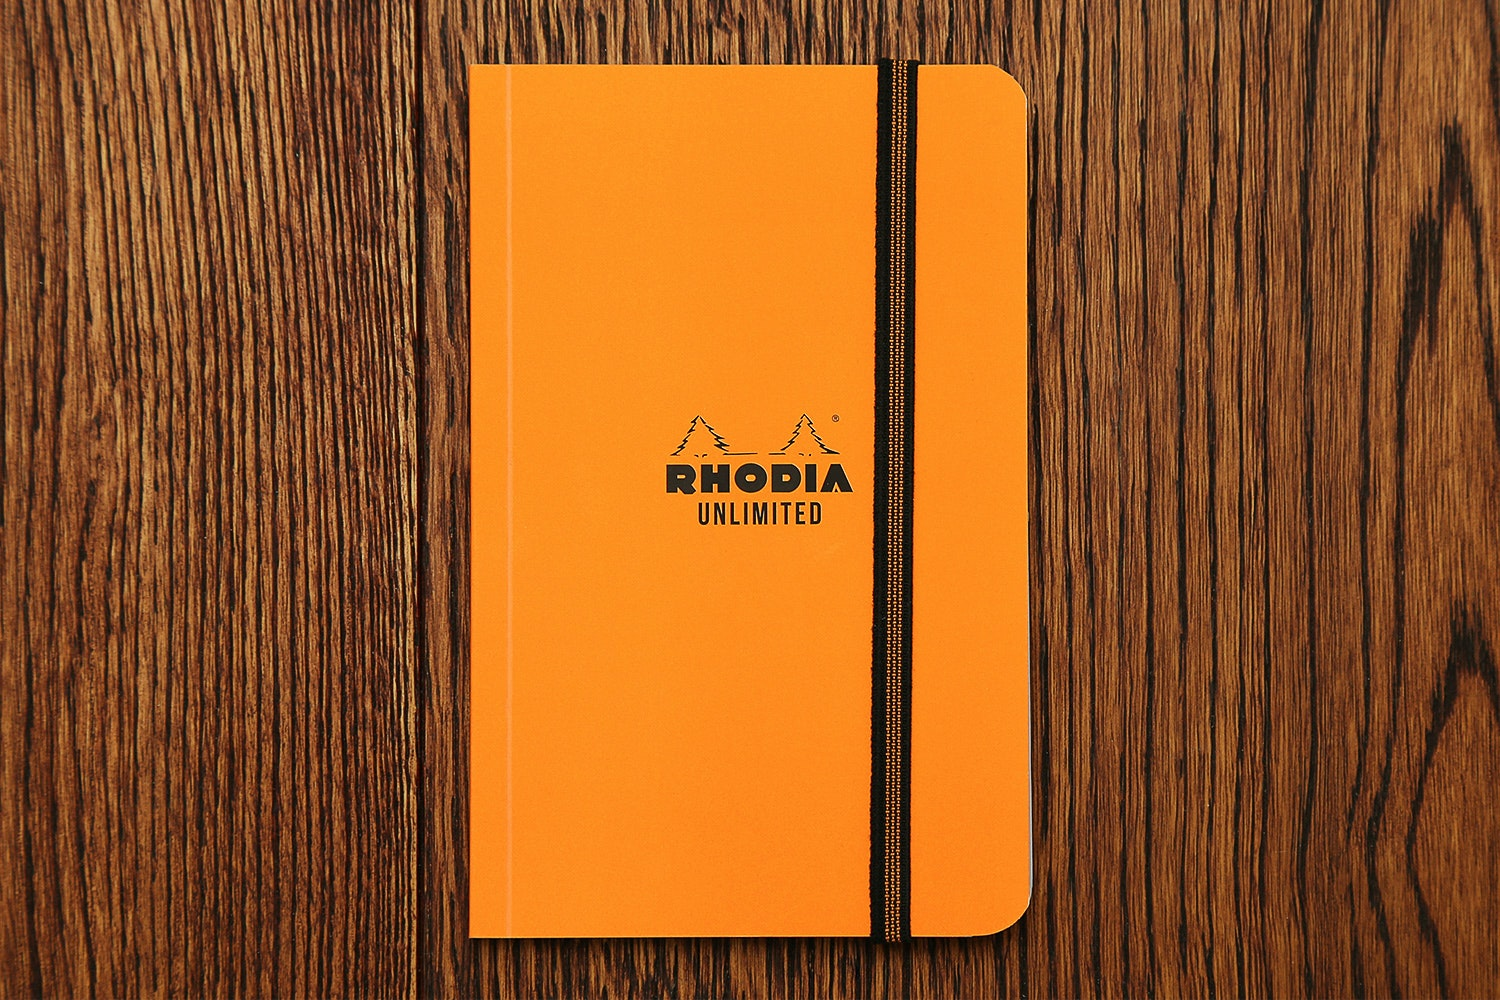 Rhodia Unlimited Orange / Lined